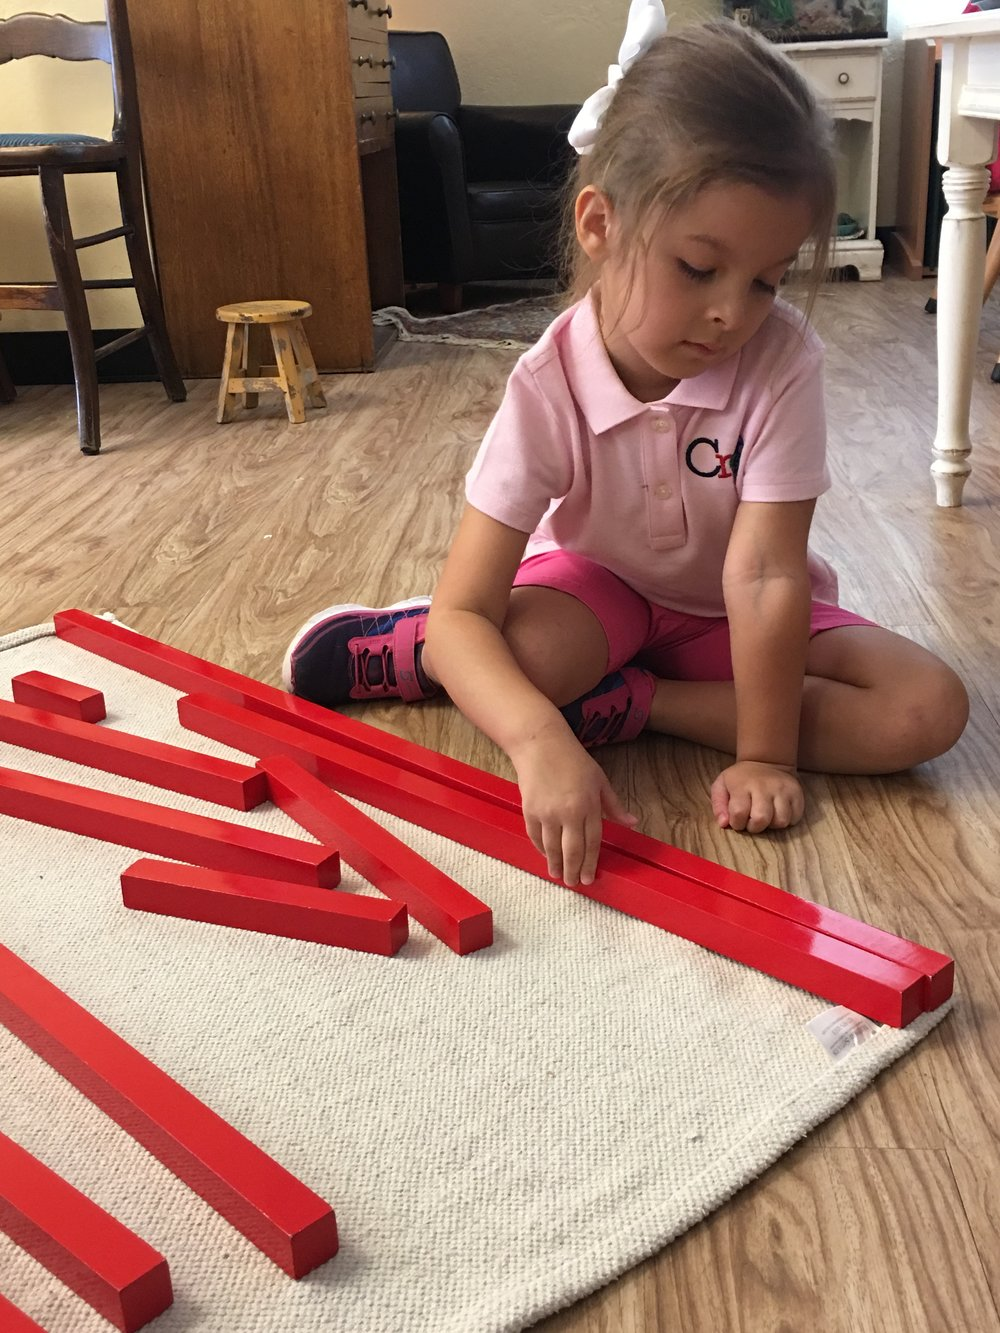 A child working on the red rods